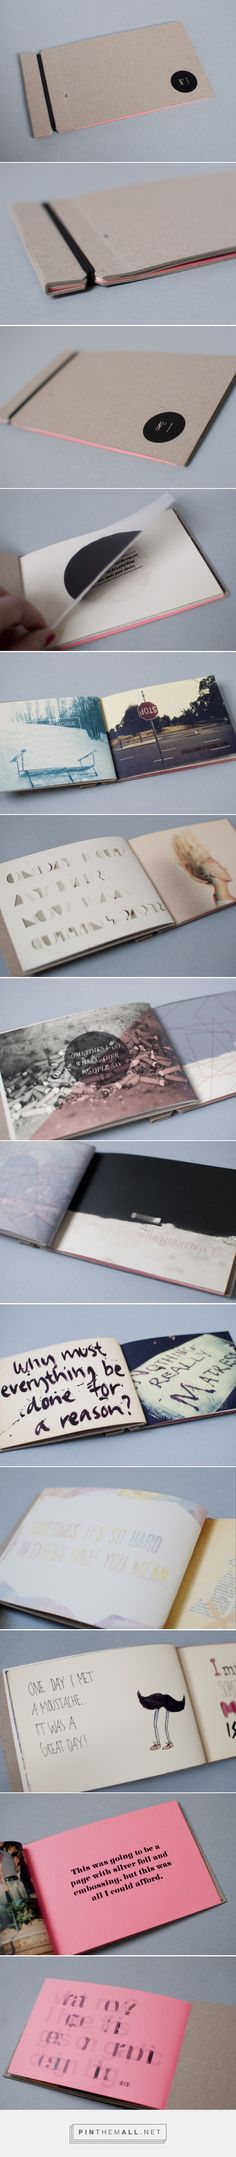 I love the flip book idea with the pink page border. The lightly saturated images within were very pleasant to the eye.